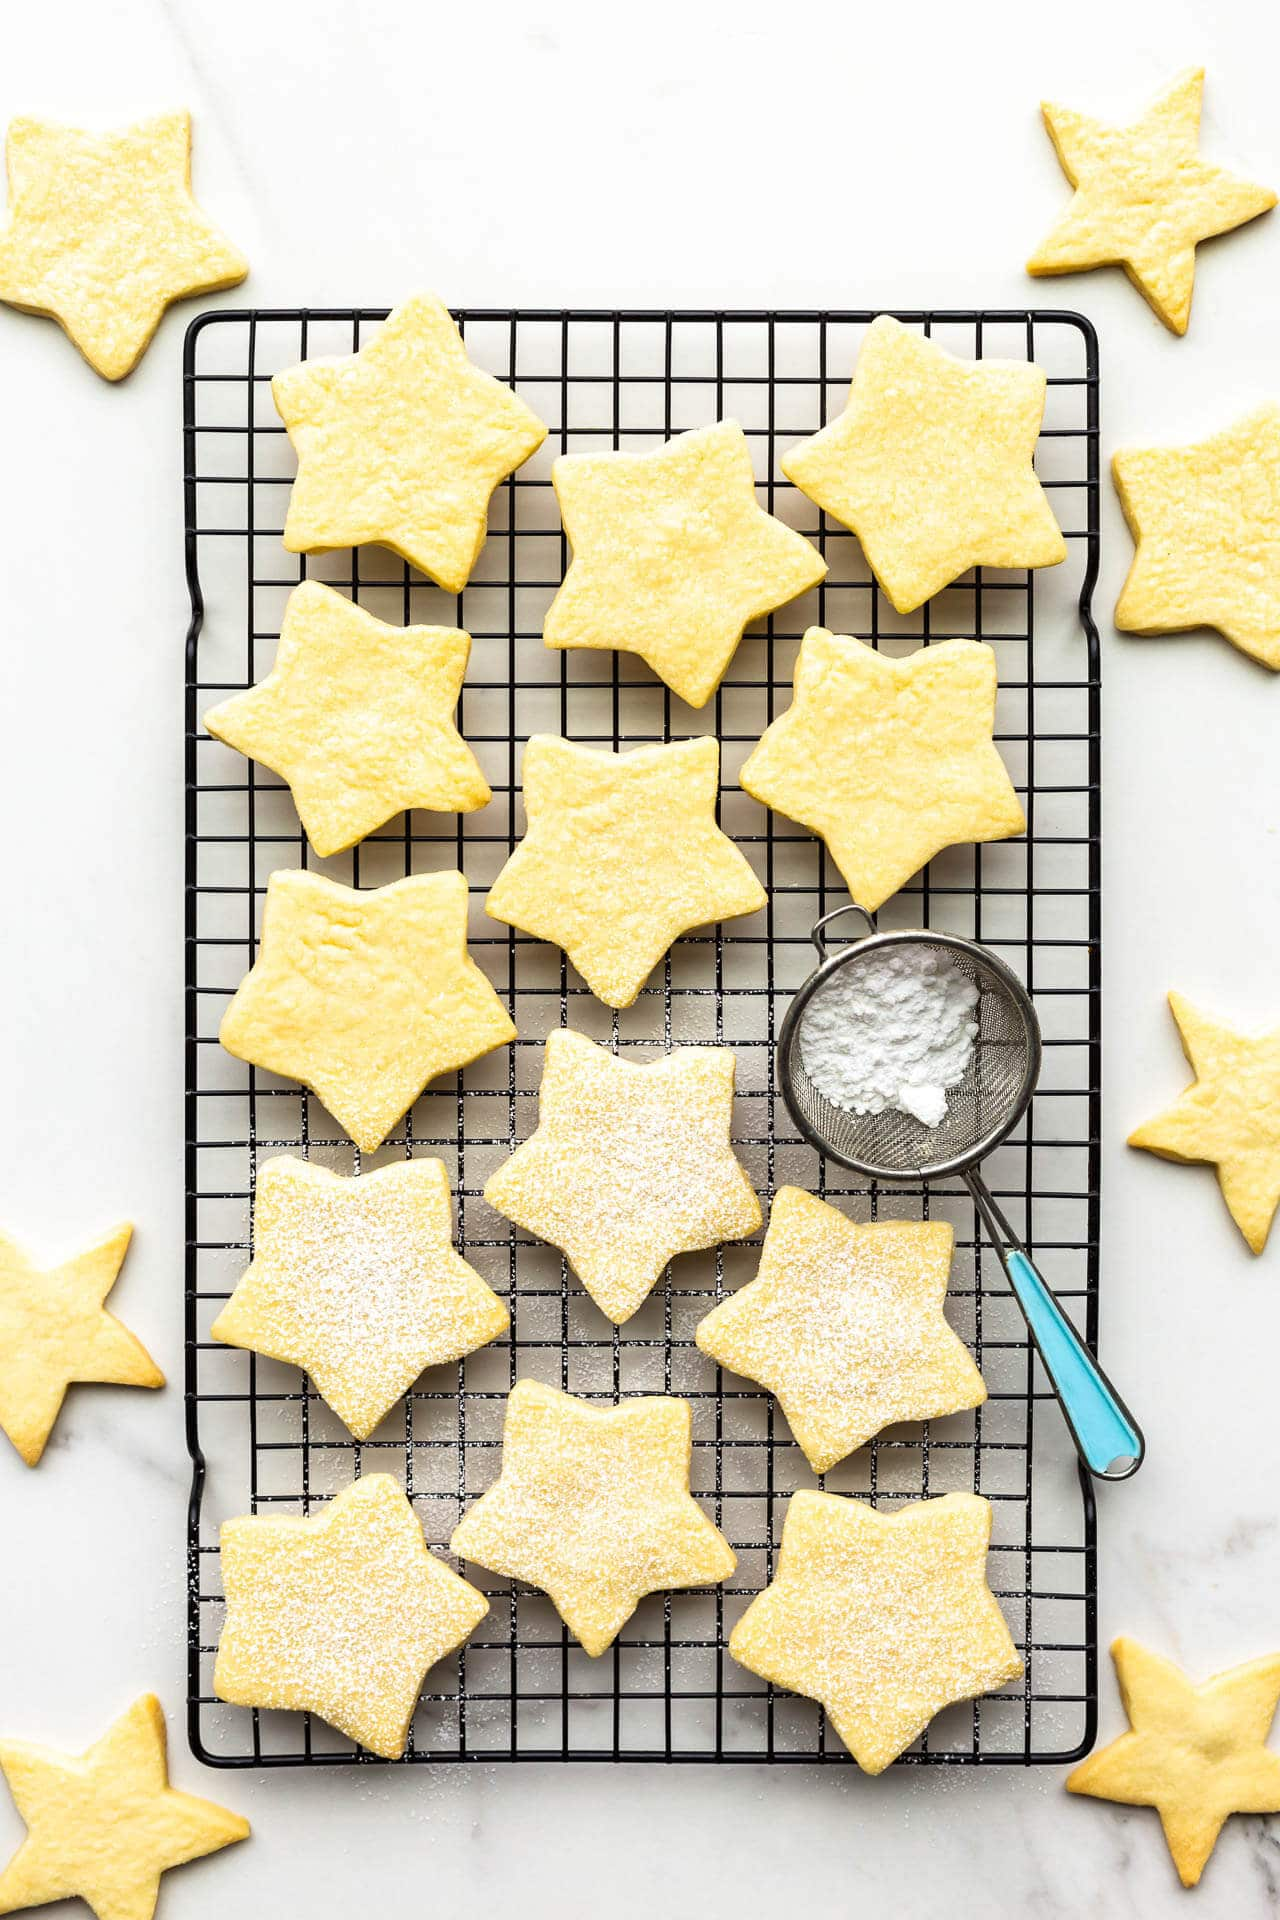 Star-shaped shortbread cookie on cooling rack with mini sifter of powdered sugar to sprinkle on top of the cookies.